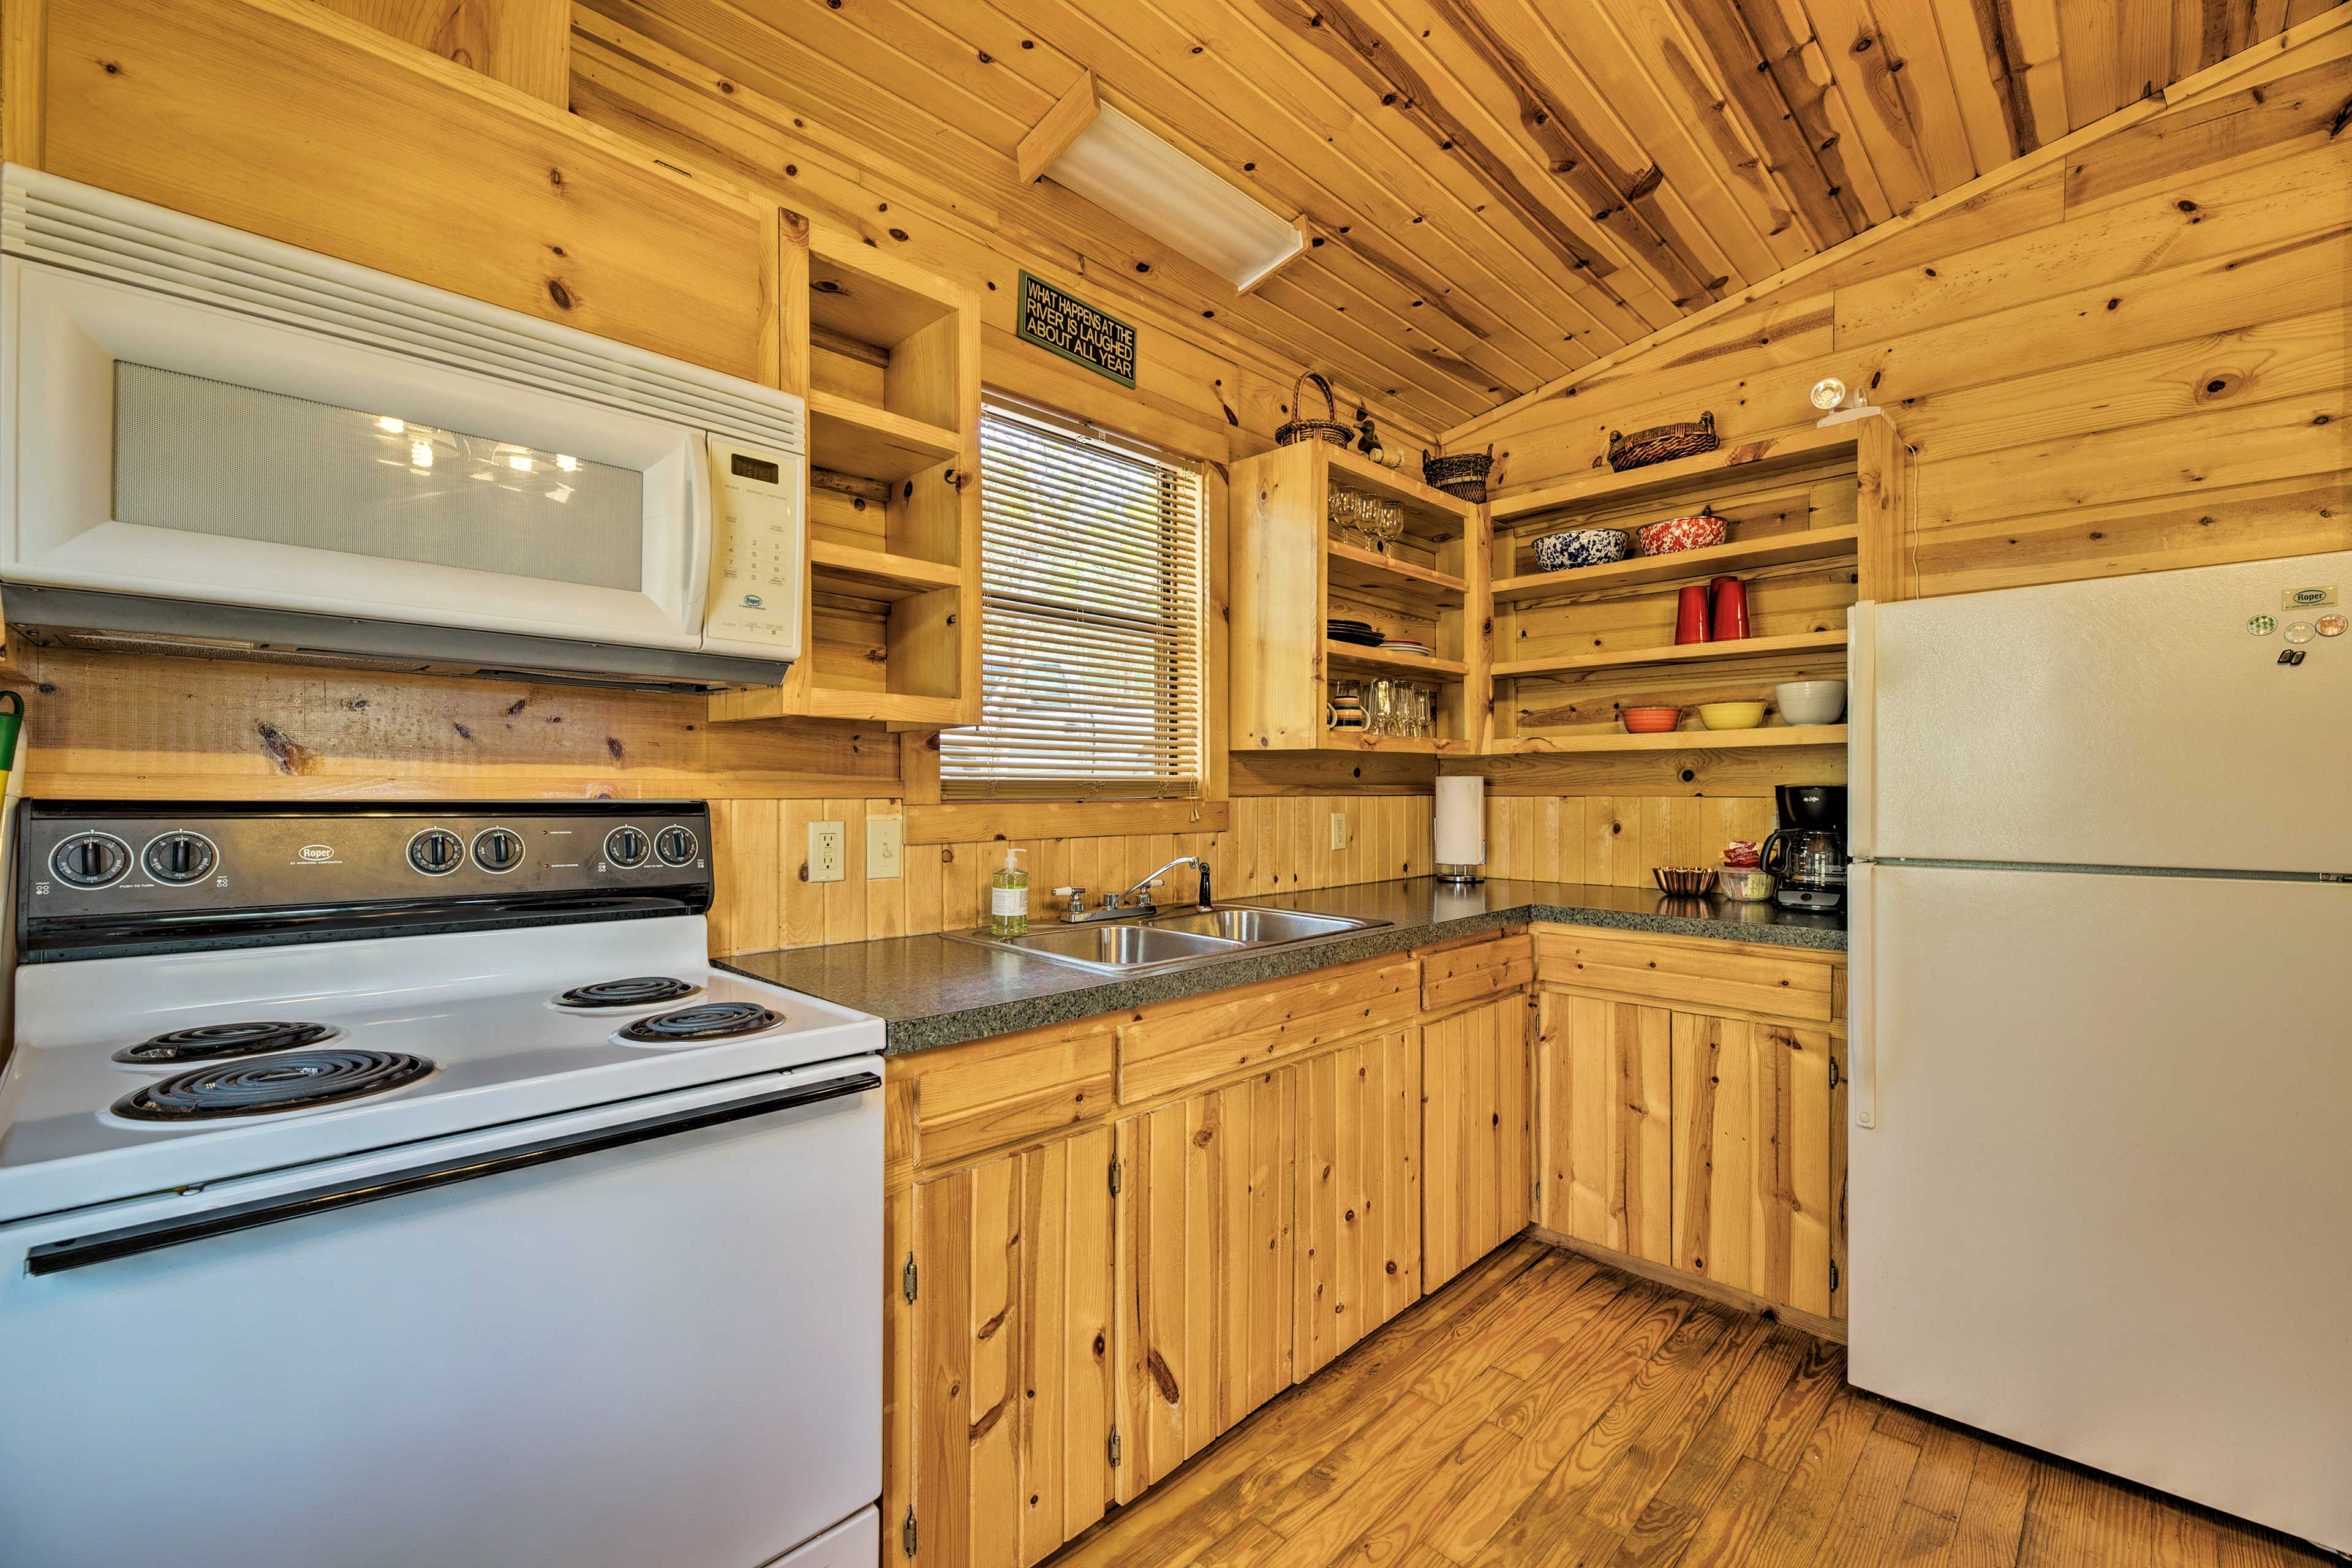 Your group's chef can whip up recipes in the fully equipped kitchen.